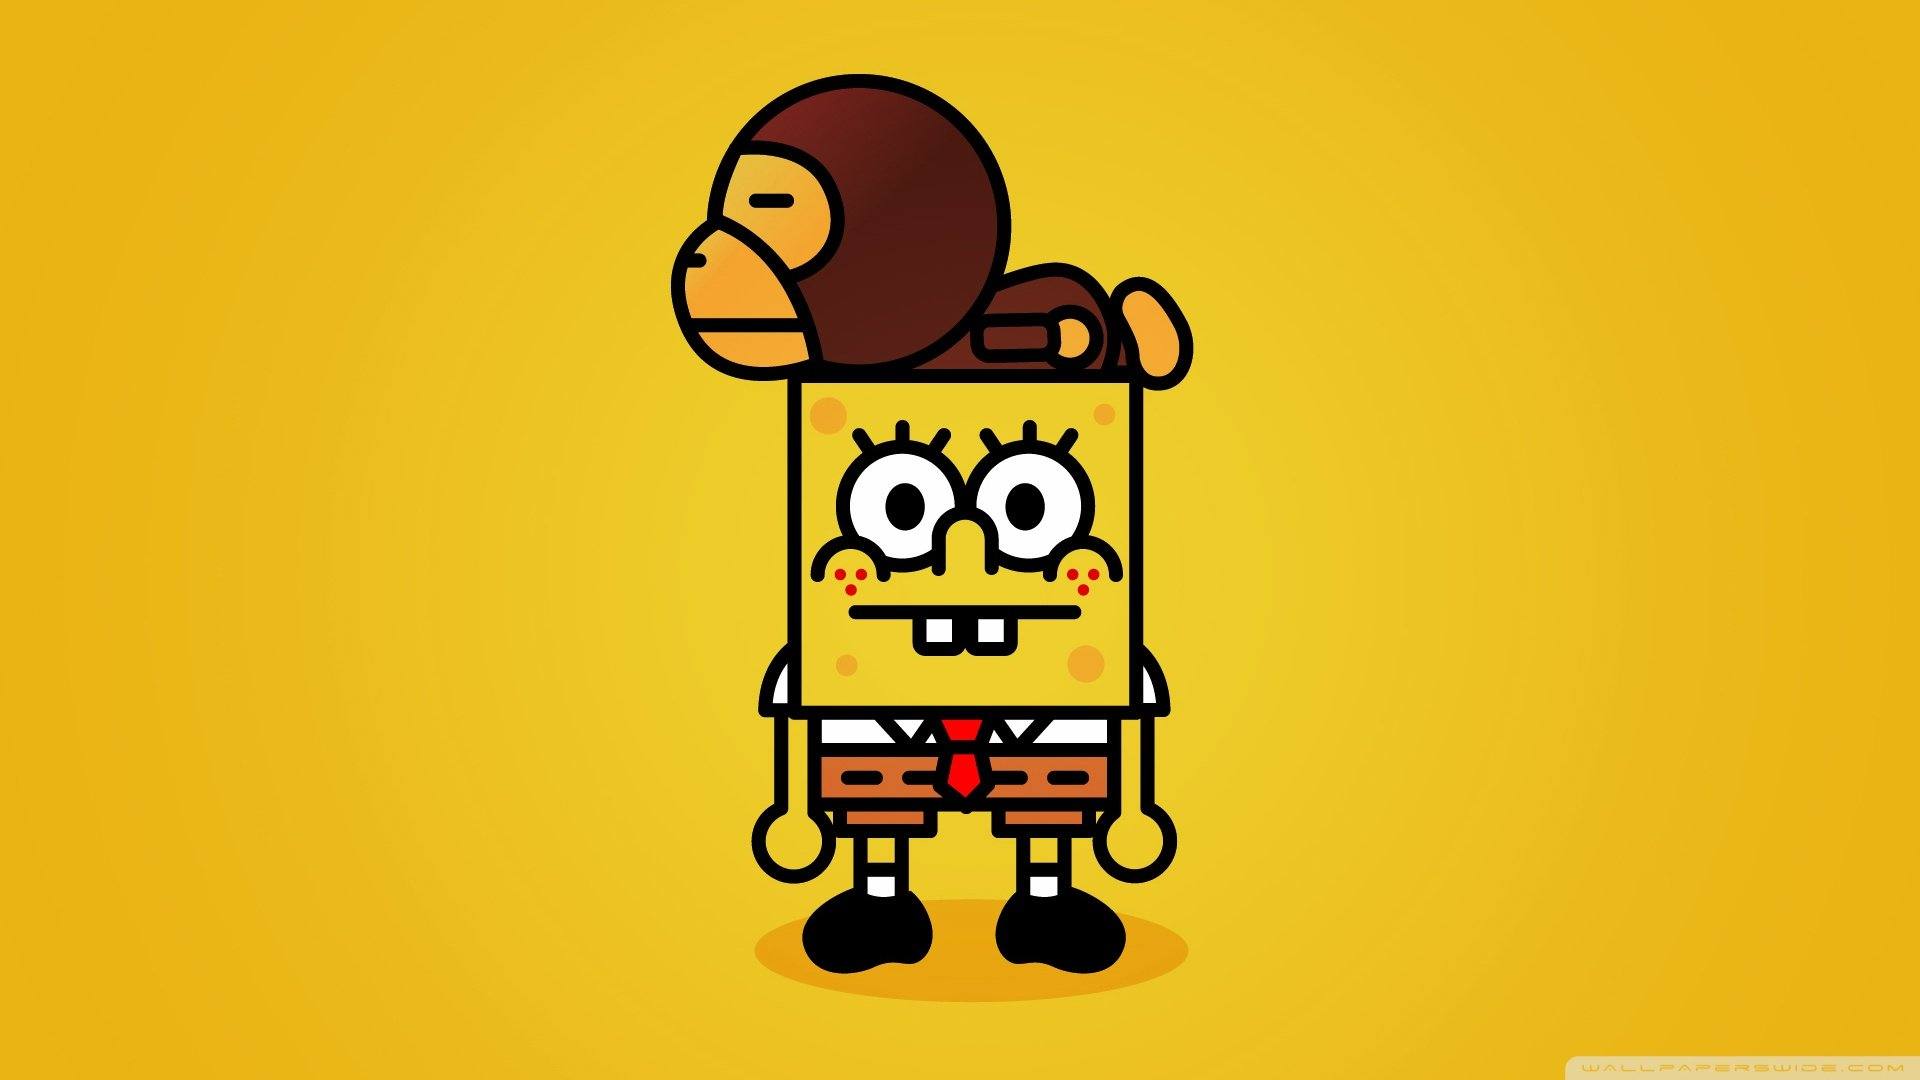 Spongebob Wallpaper Swag Wallpapersafari